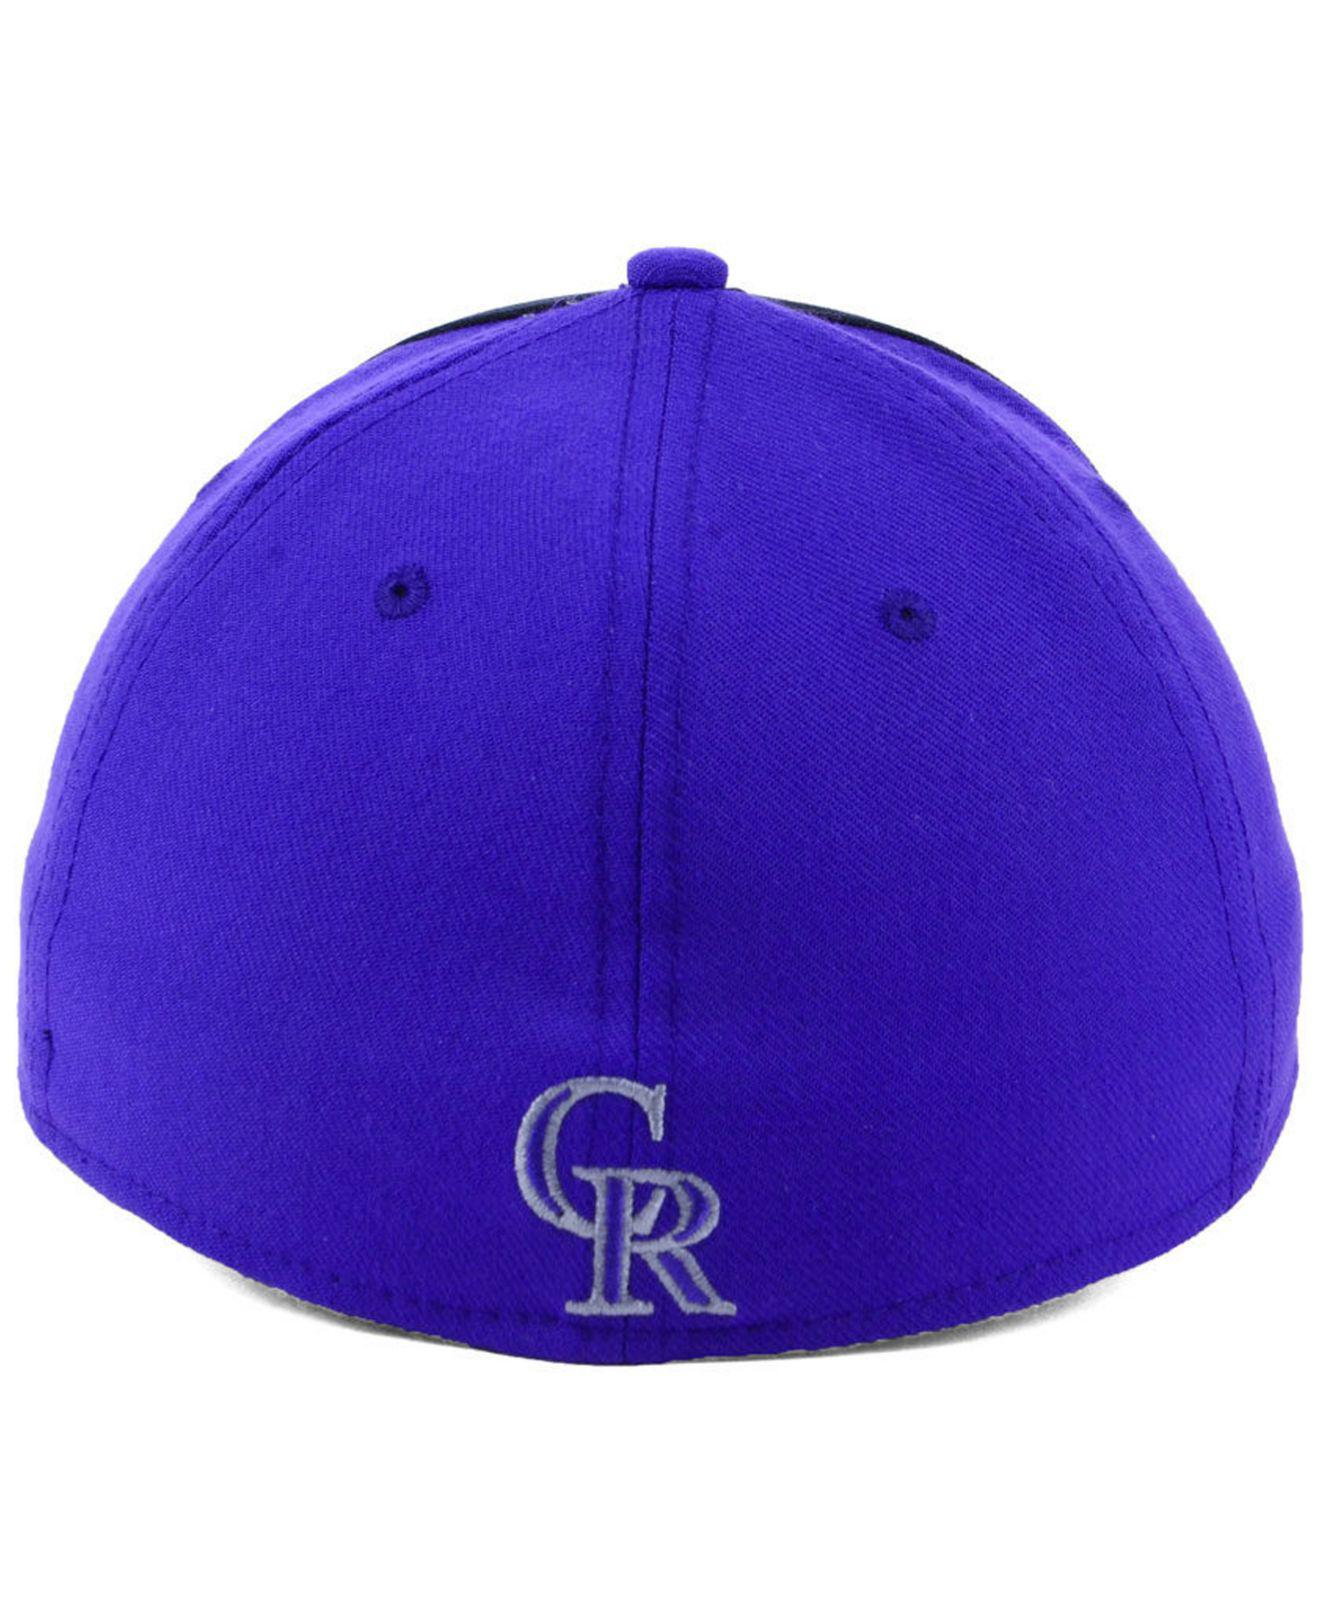 new product 8a9e0 3b53a ... top quality nike blue colorado rockies team color reflective swooshflex  cap for men lyst. view